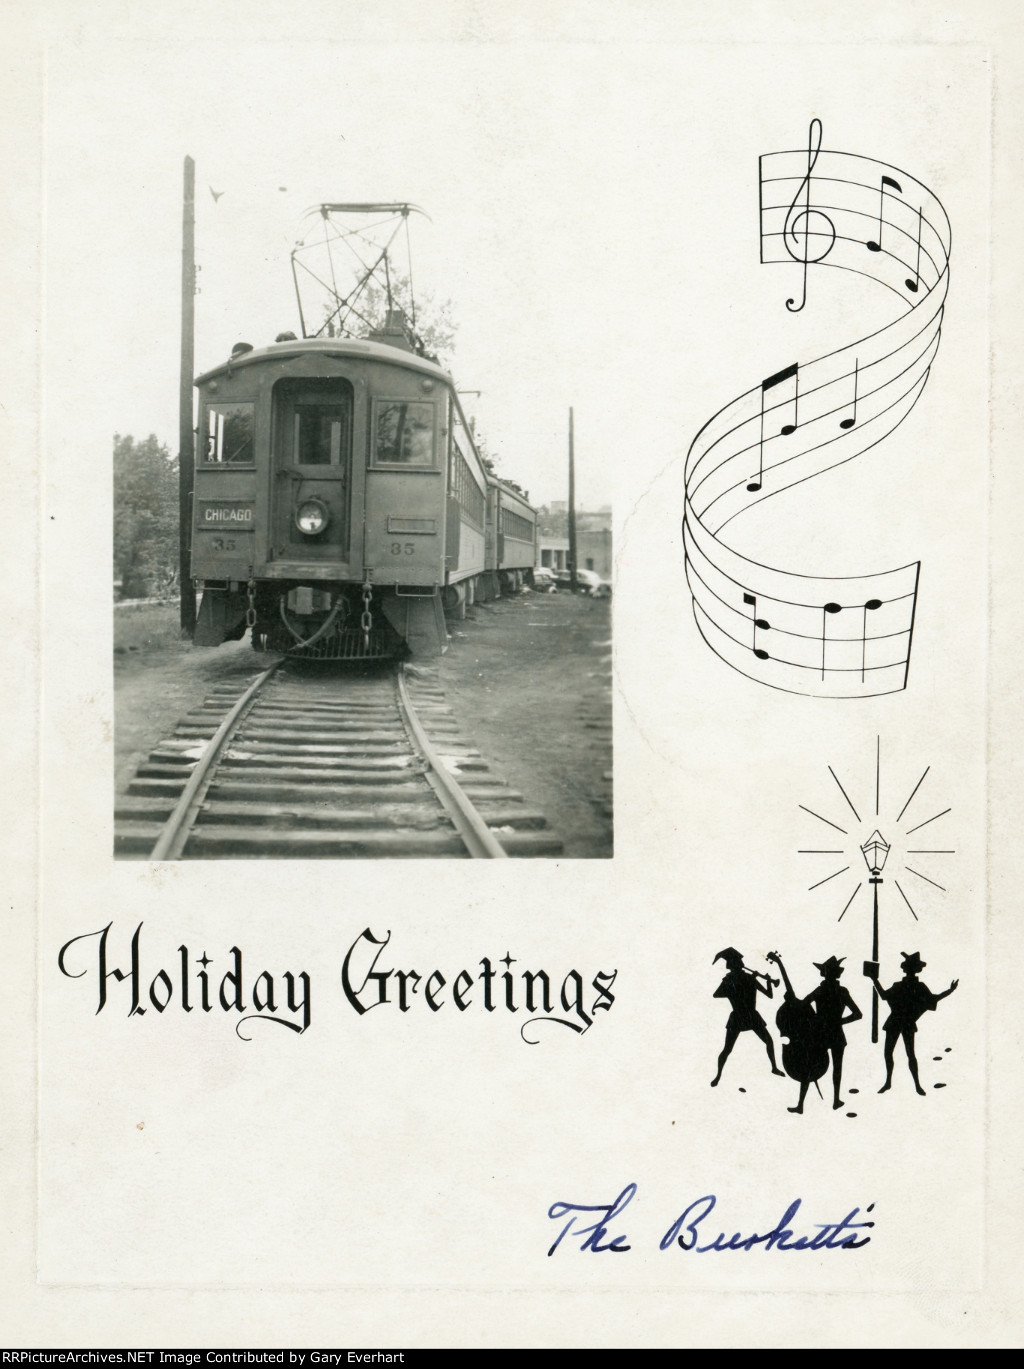 Chicago South Shore & South Bend Christmas Card